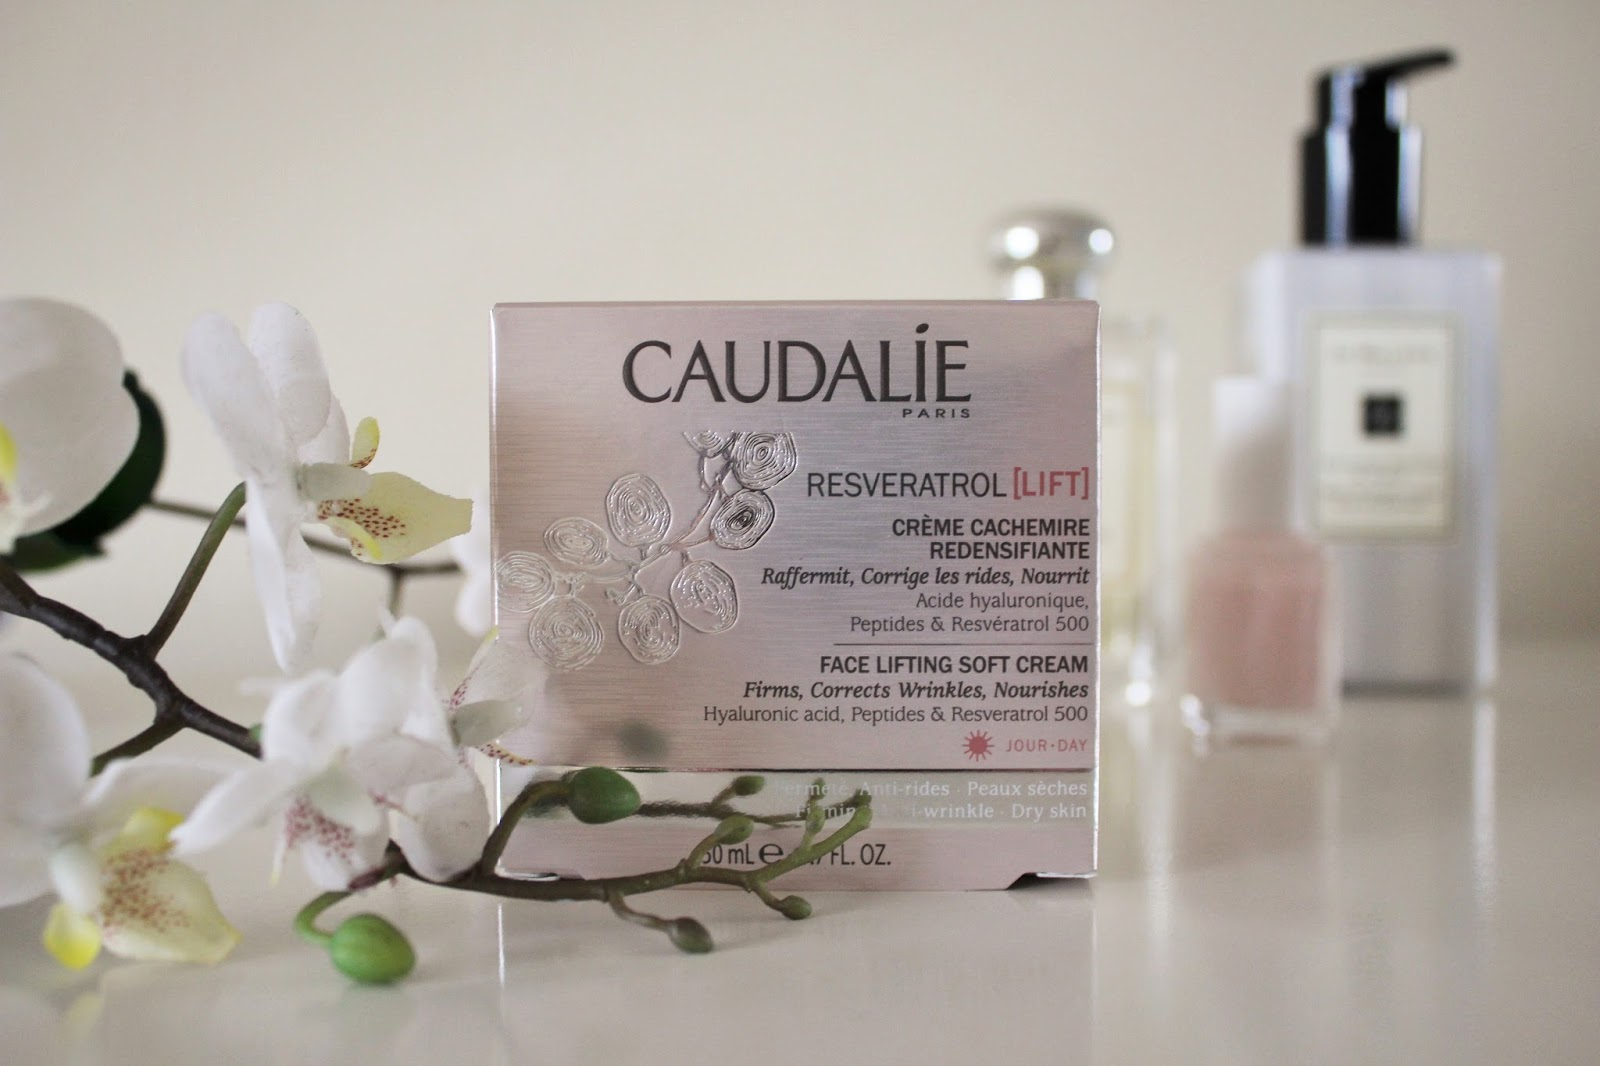 Caudalie Resveratrol Lift Face Lifting Soft Cream Review 5